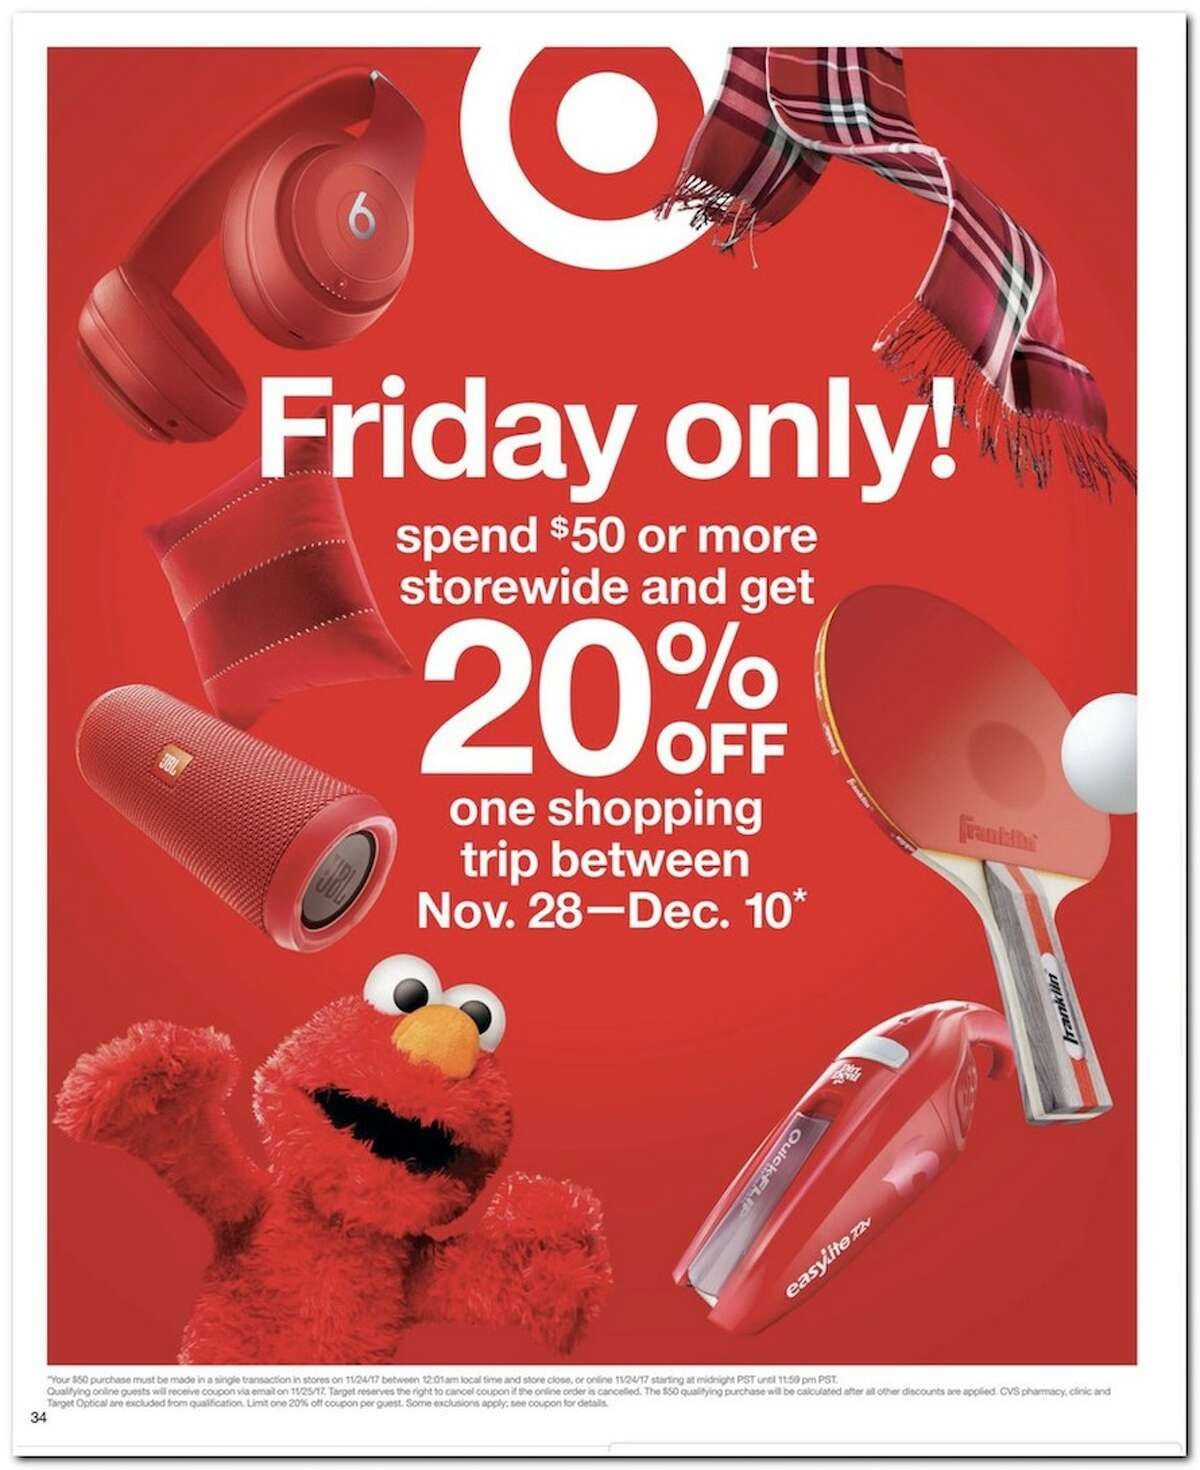 Target In-store hours: Thursday, Nov. 23 at 6 p.m. to midnight; then reopen at 6 a.m. Friday, Nov. 24.Online hours: Shop deals at Target.com all weekend (Nov. 24 - 26) with free shipping on items. More details here.See their Black Friday ad circular here.